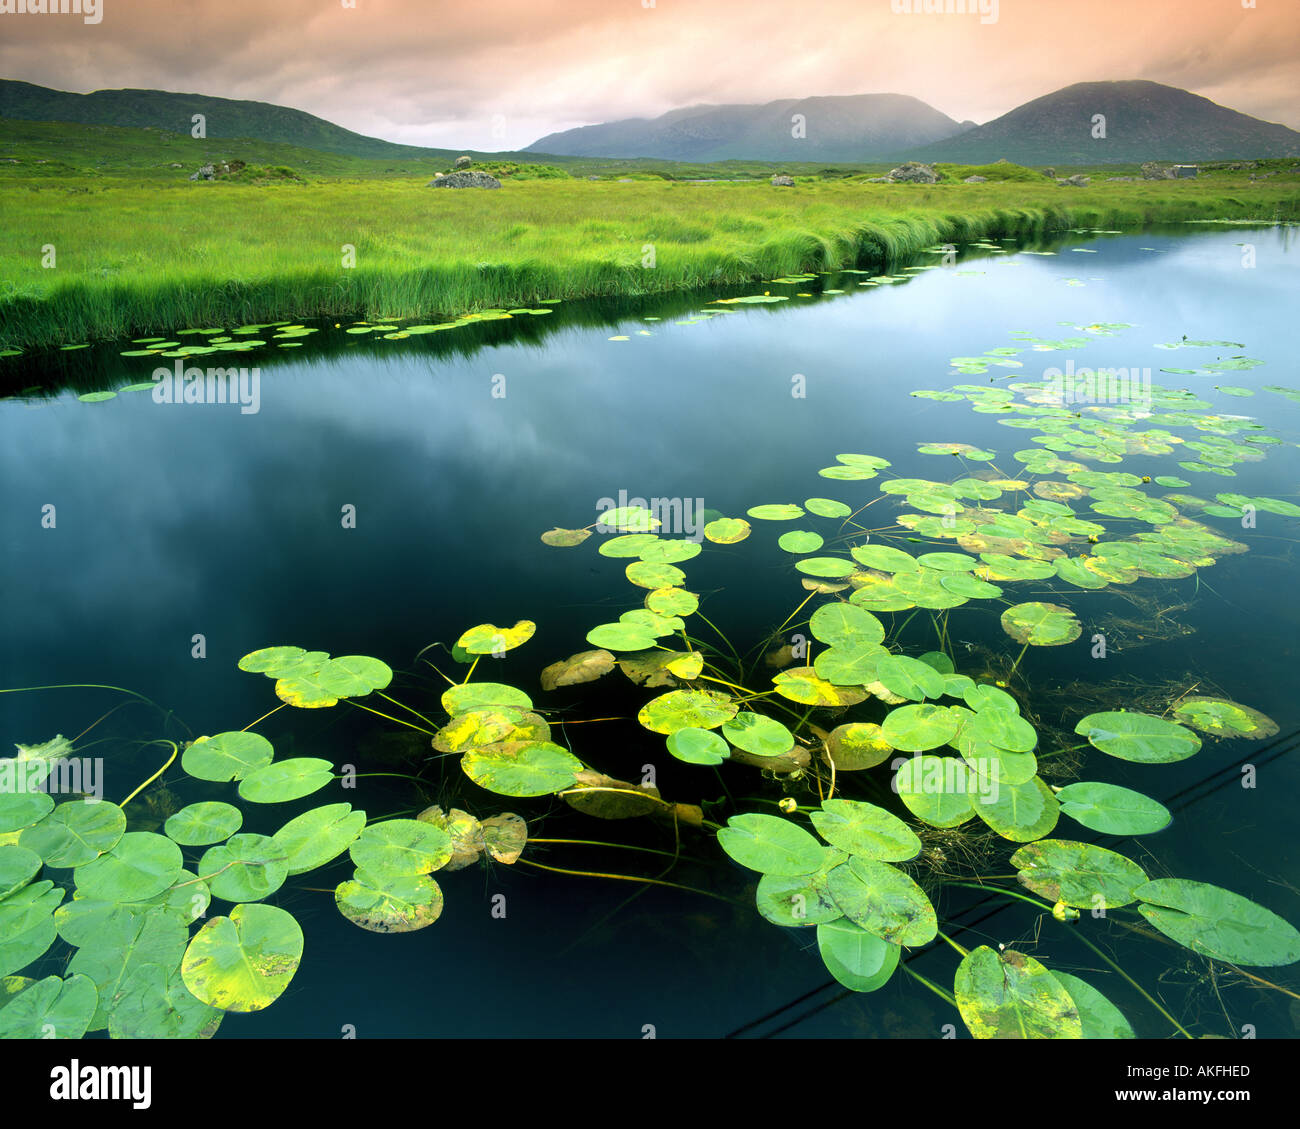 IE - CONNEMARA:  Ahalia River at Maam Cross - Stock Image